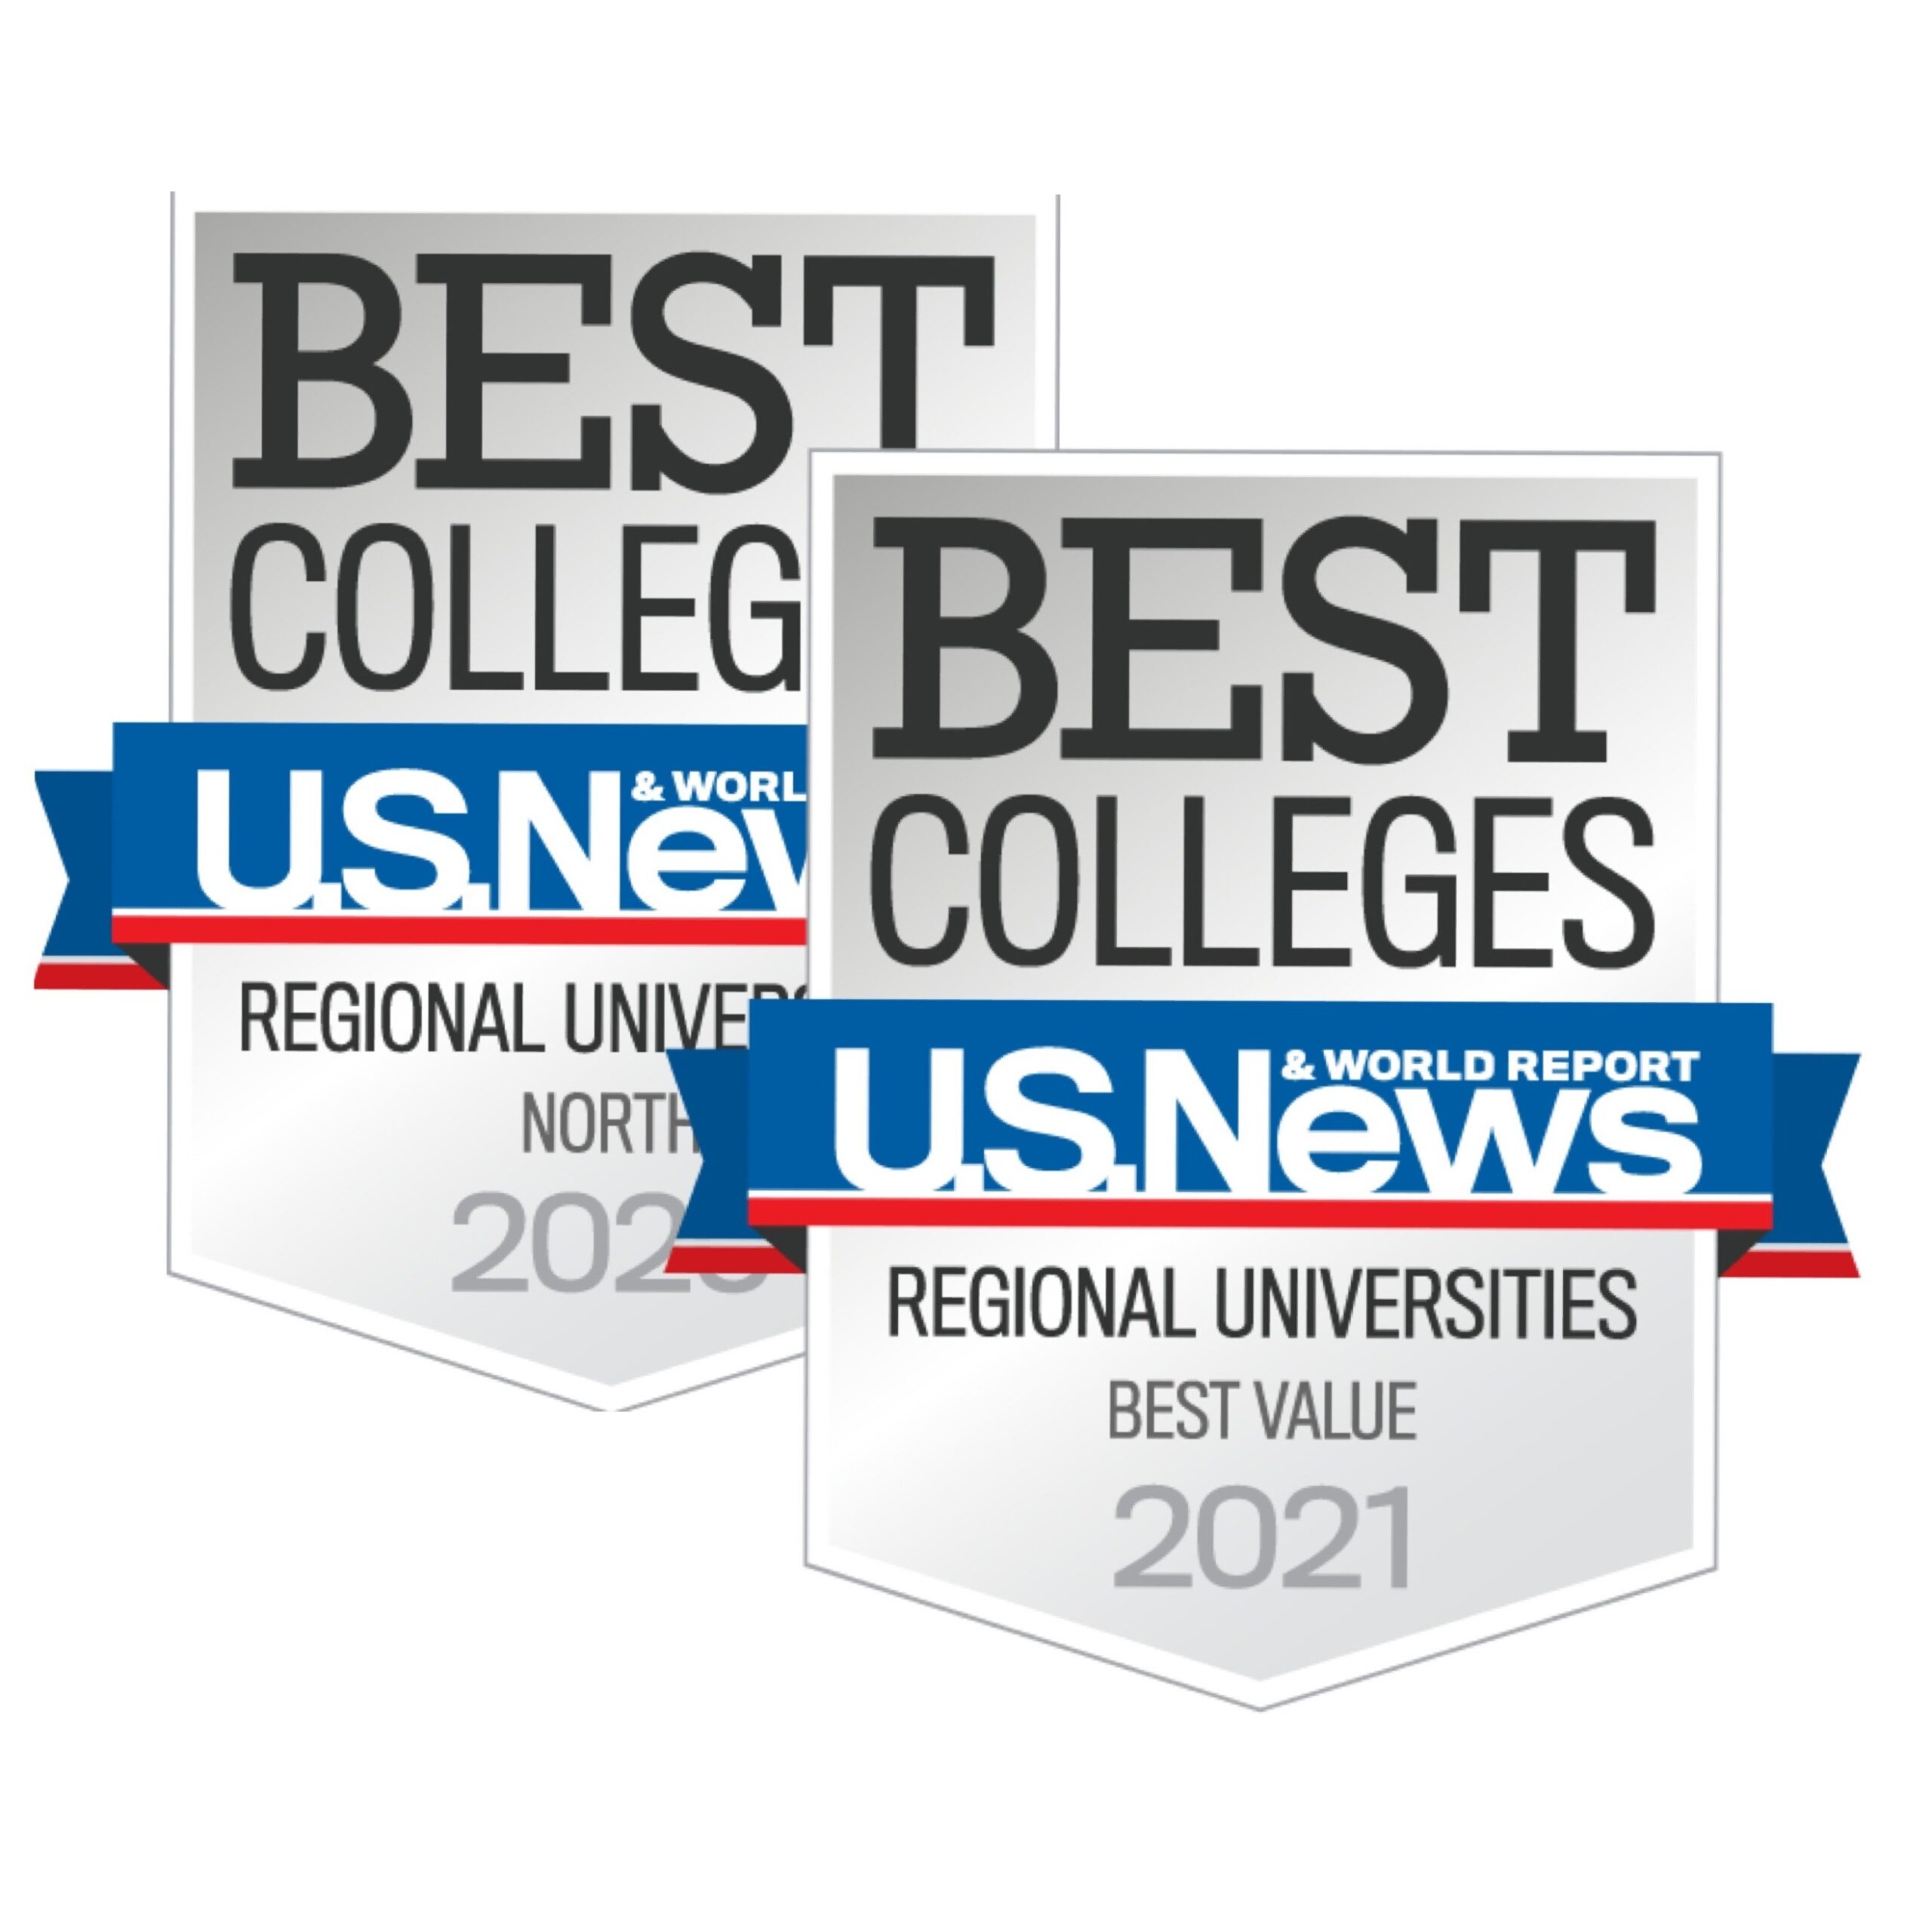 US news Best Colleges Stitched image